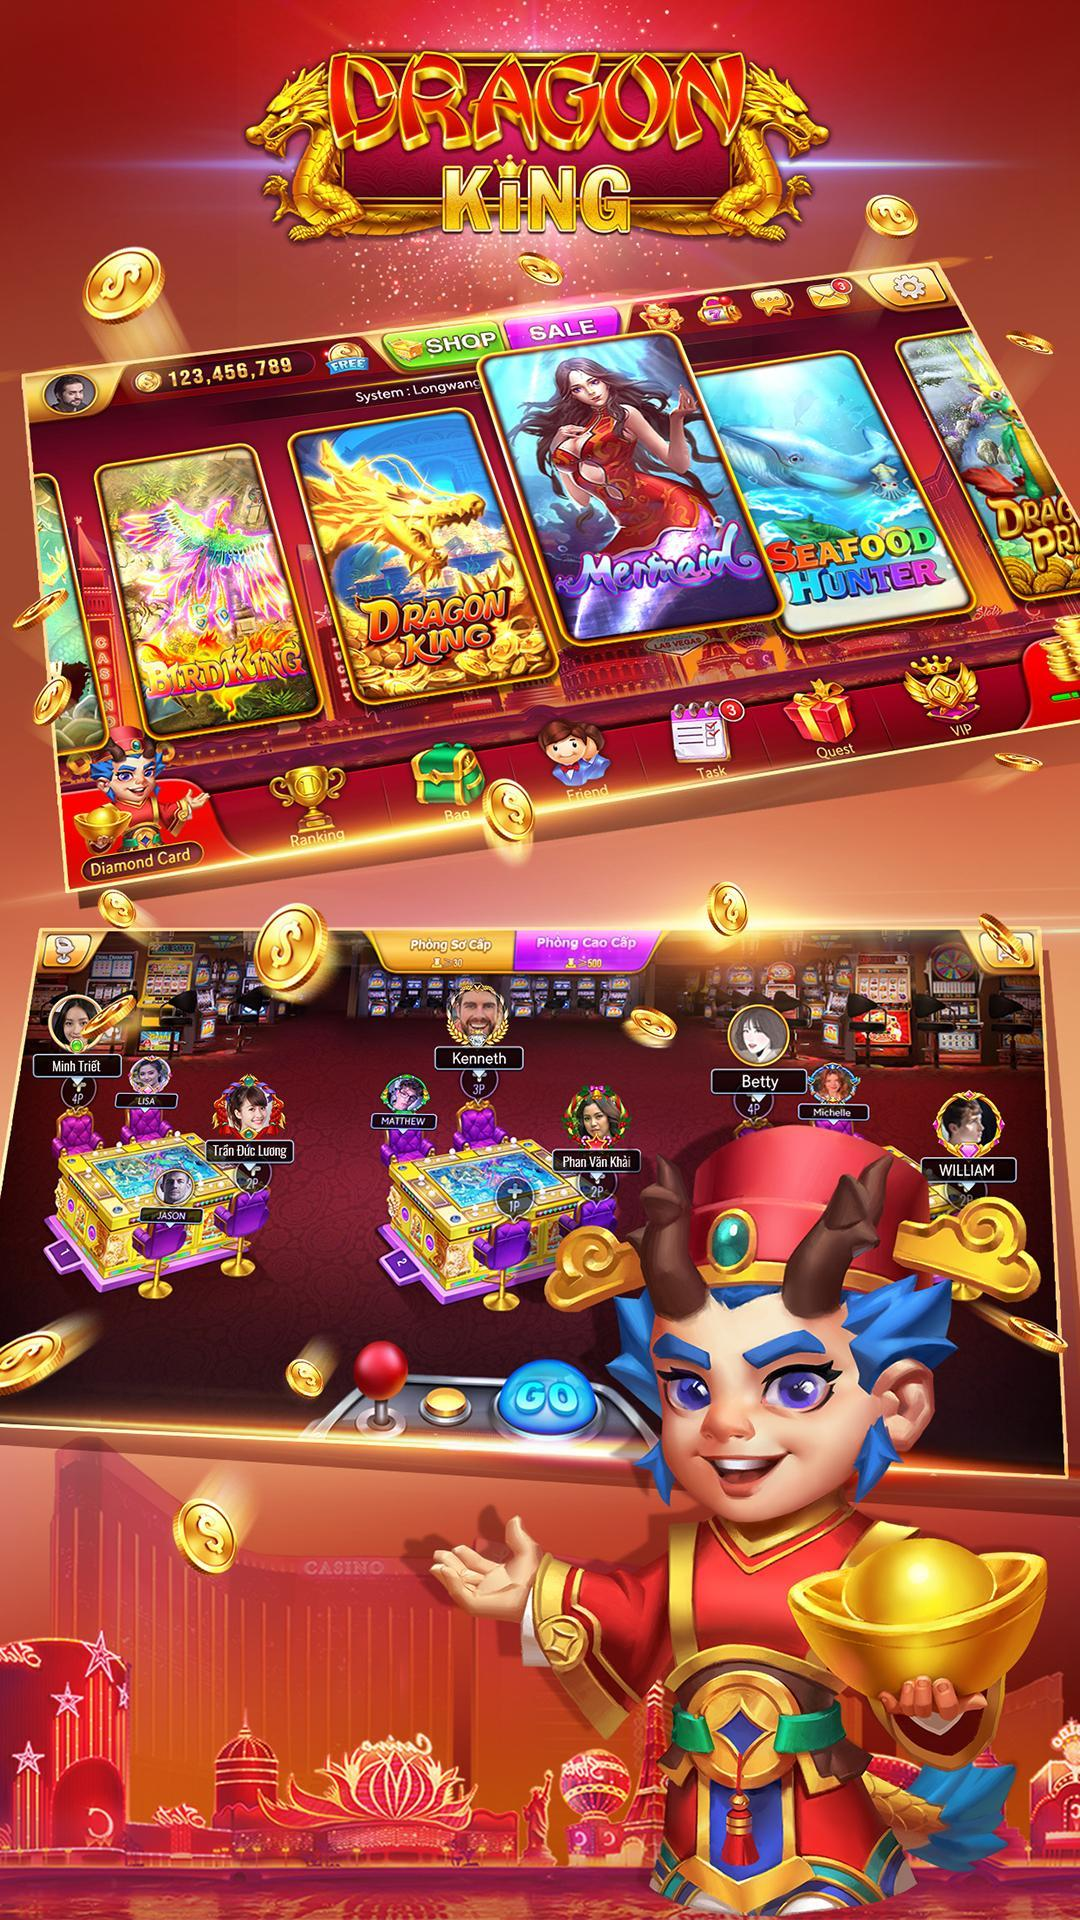 Dragon King Fishing Online-Arcade  Fish Games 5.2.0 Screenshot 8